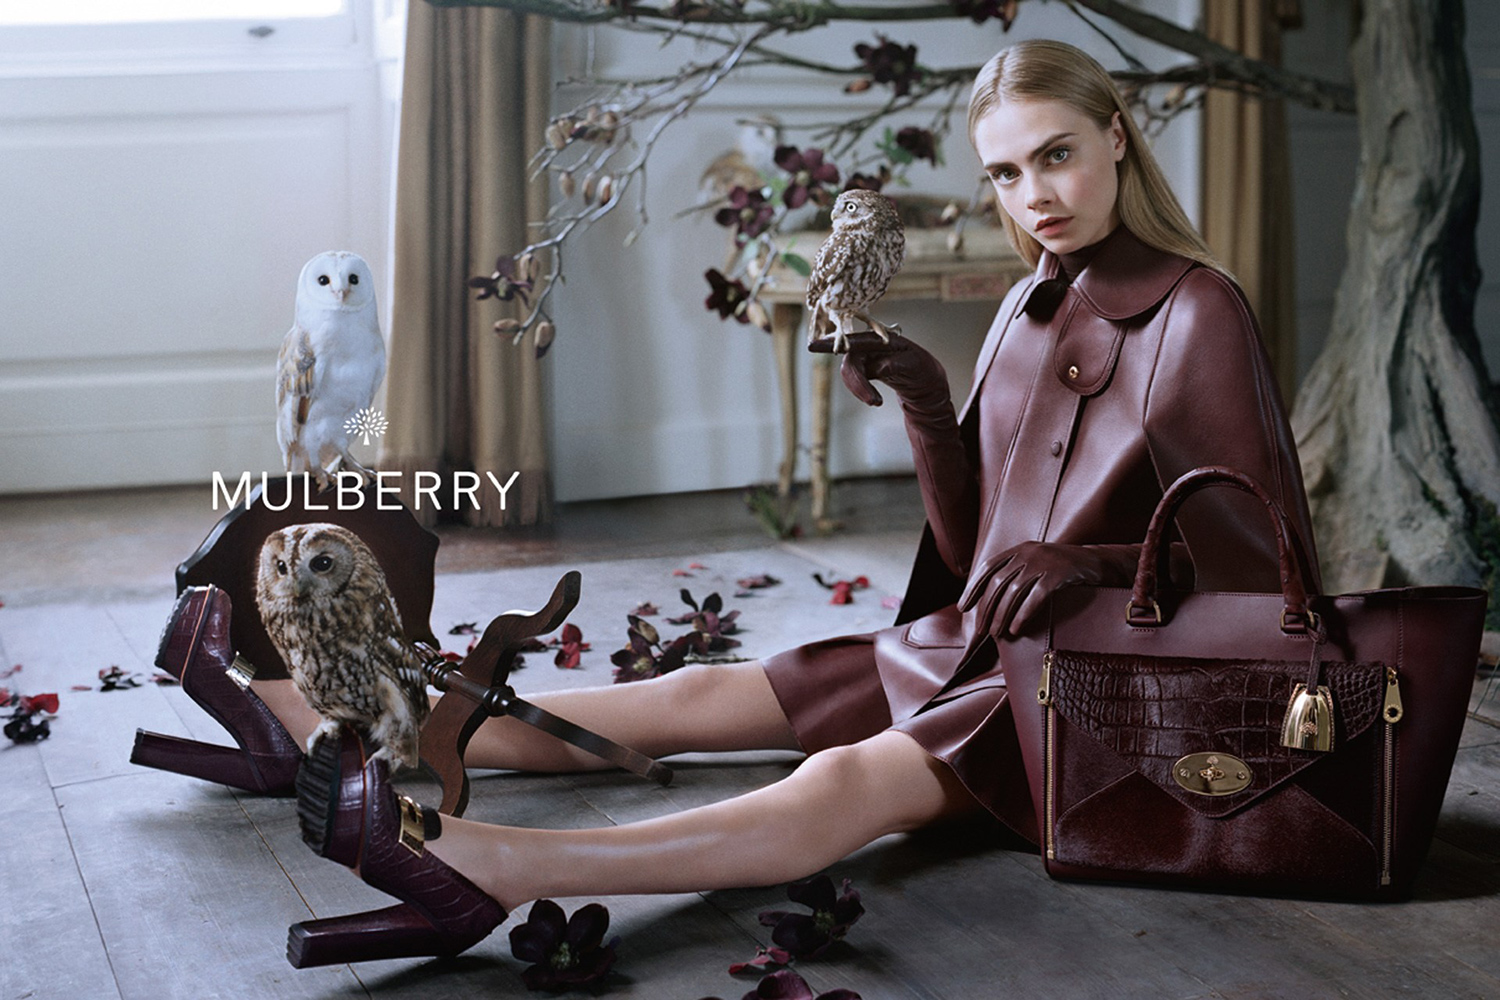 Mulberry: The Recovery